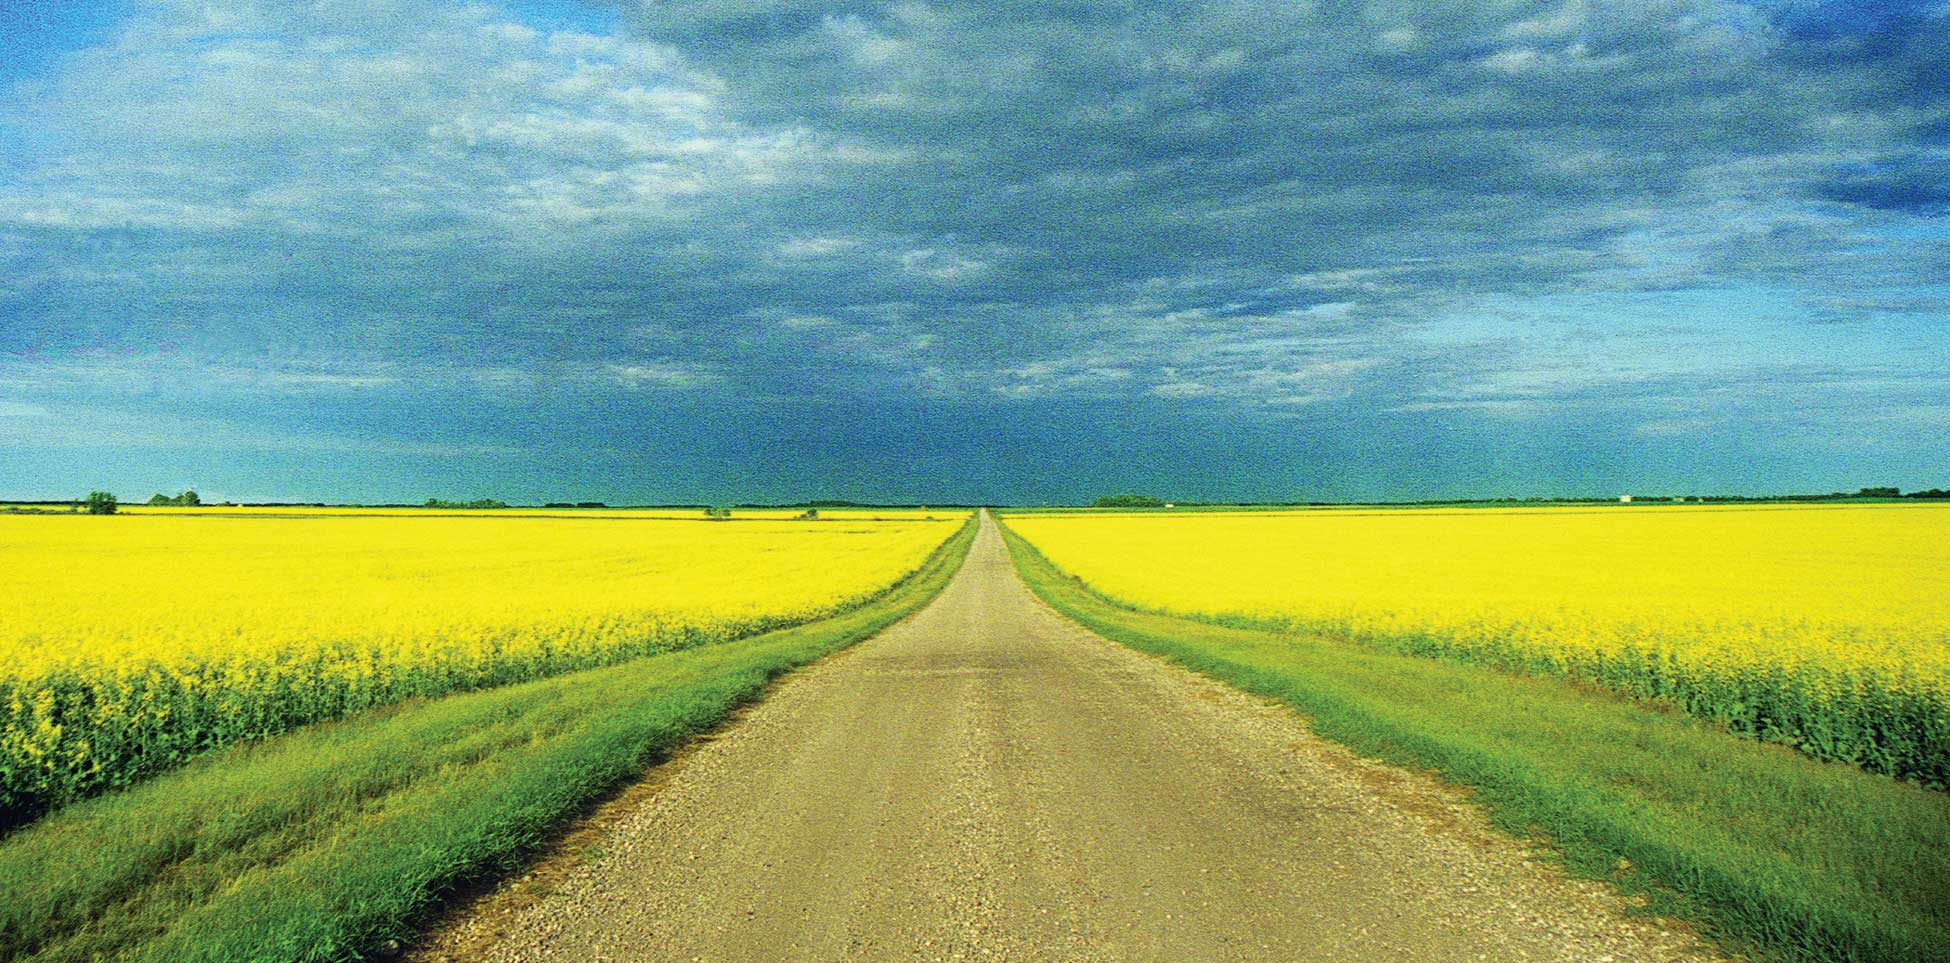 Figure 1. An endless field of canola